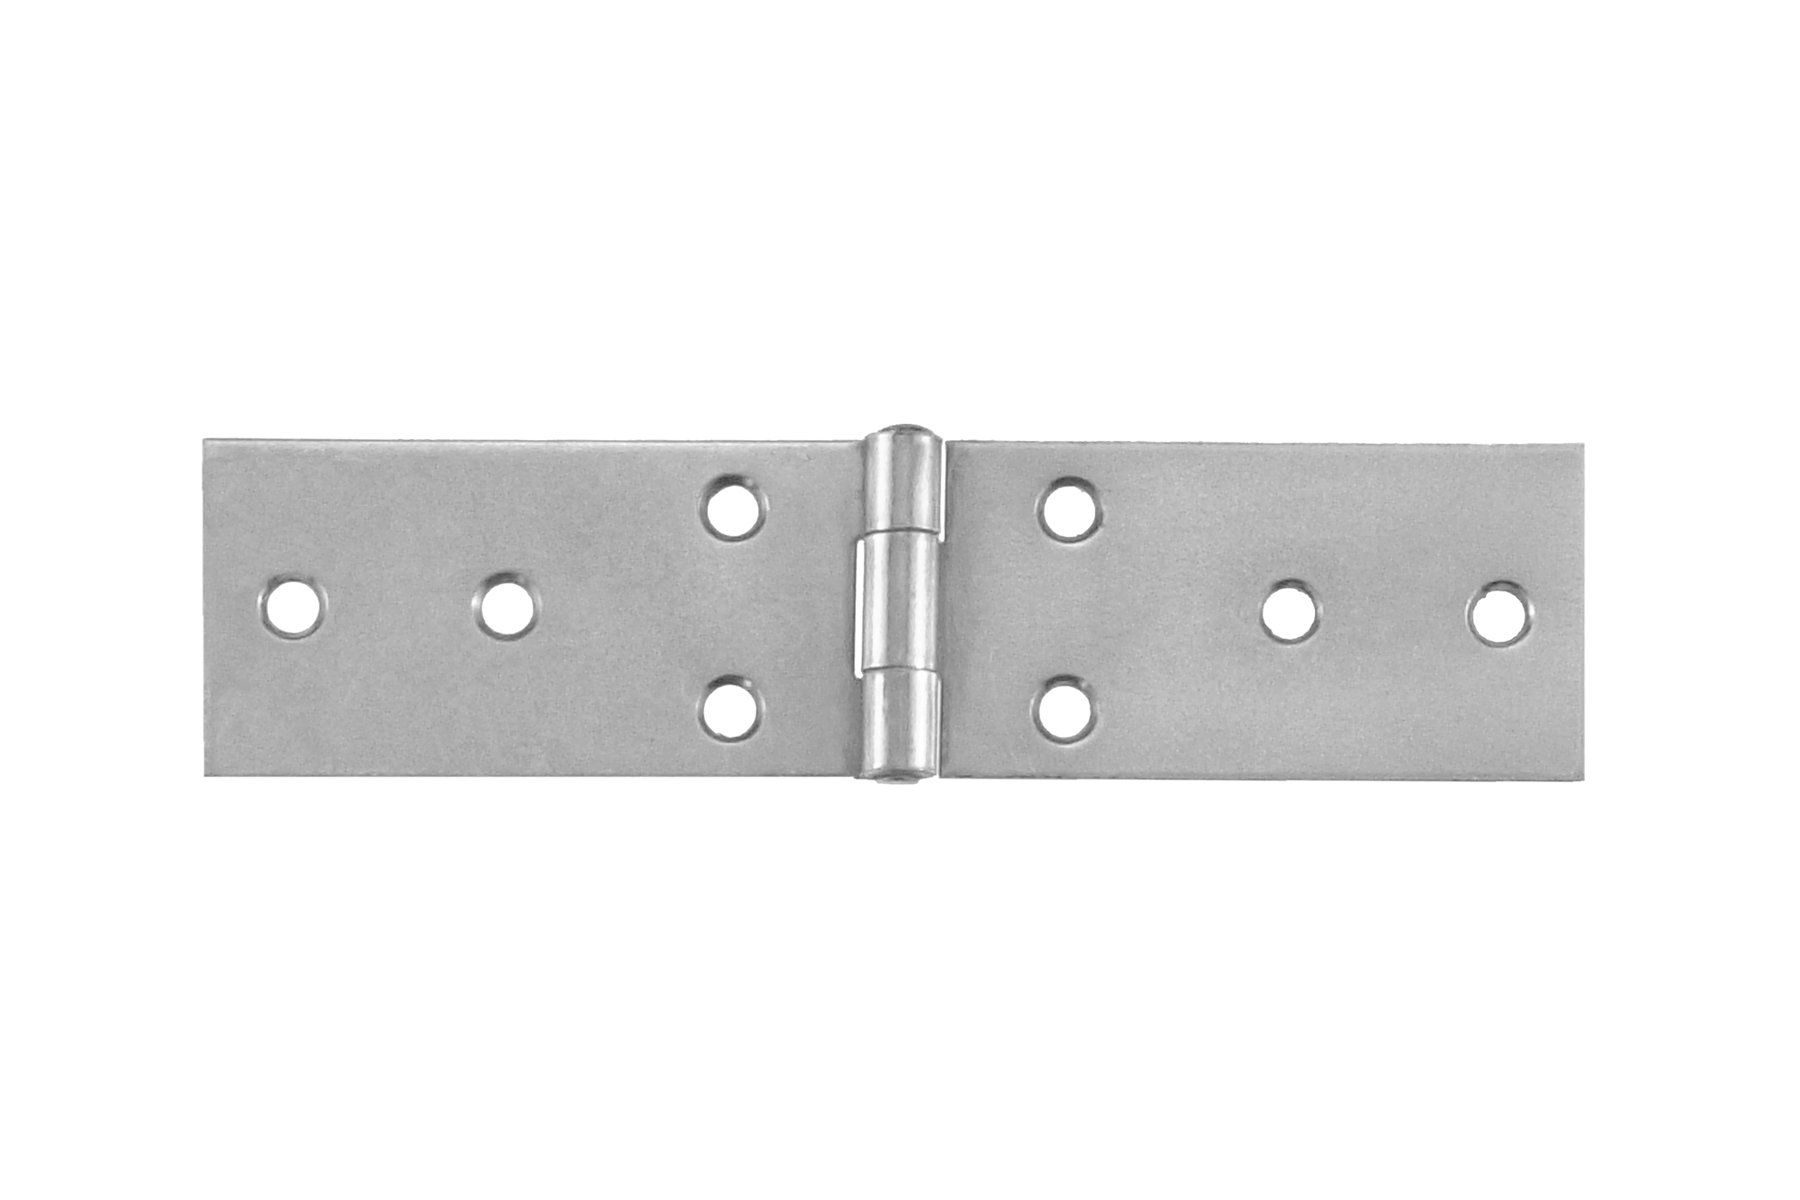 Max-Power in01141Stainless Long Close Hinges 140x 34mm, Set of 2, Blue